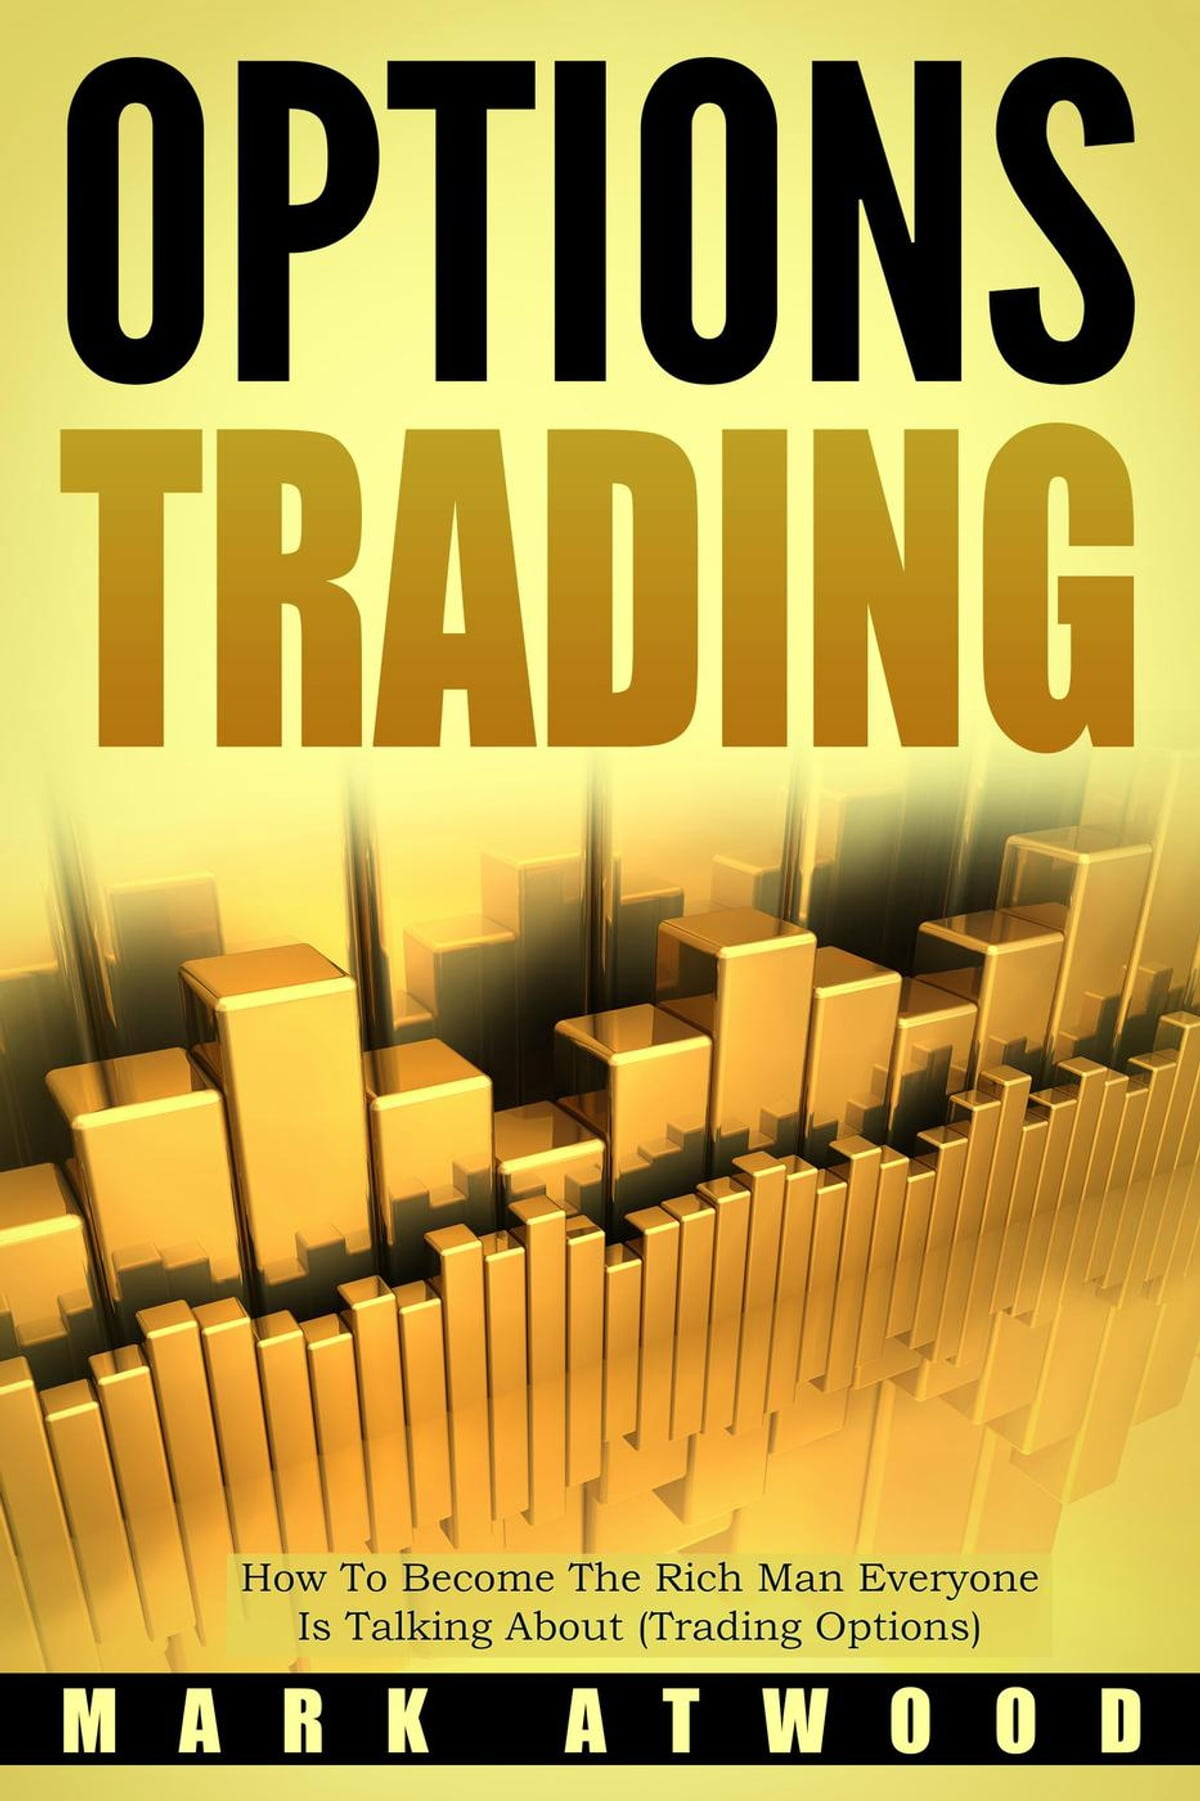 How to become rich trading options